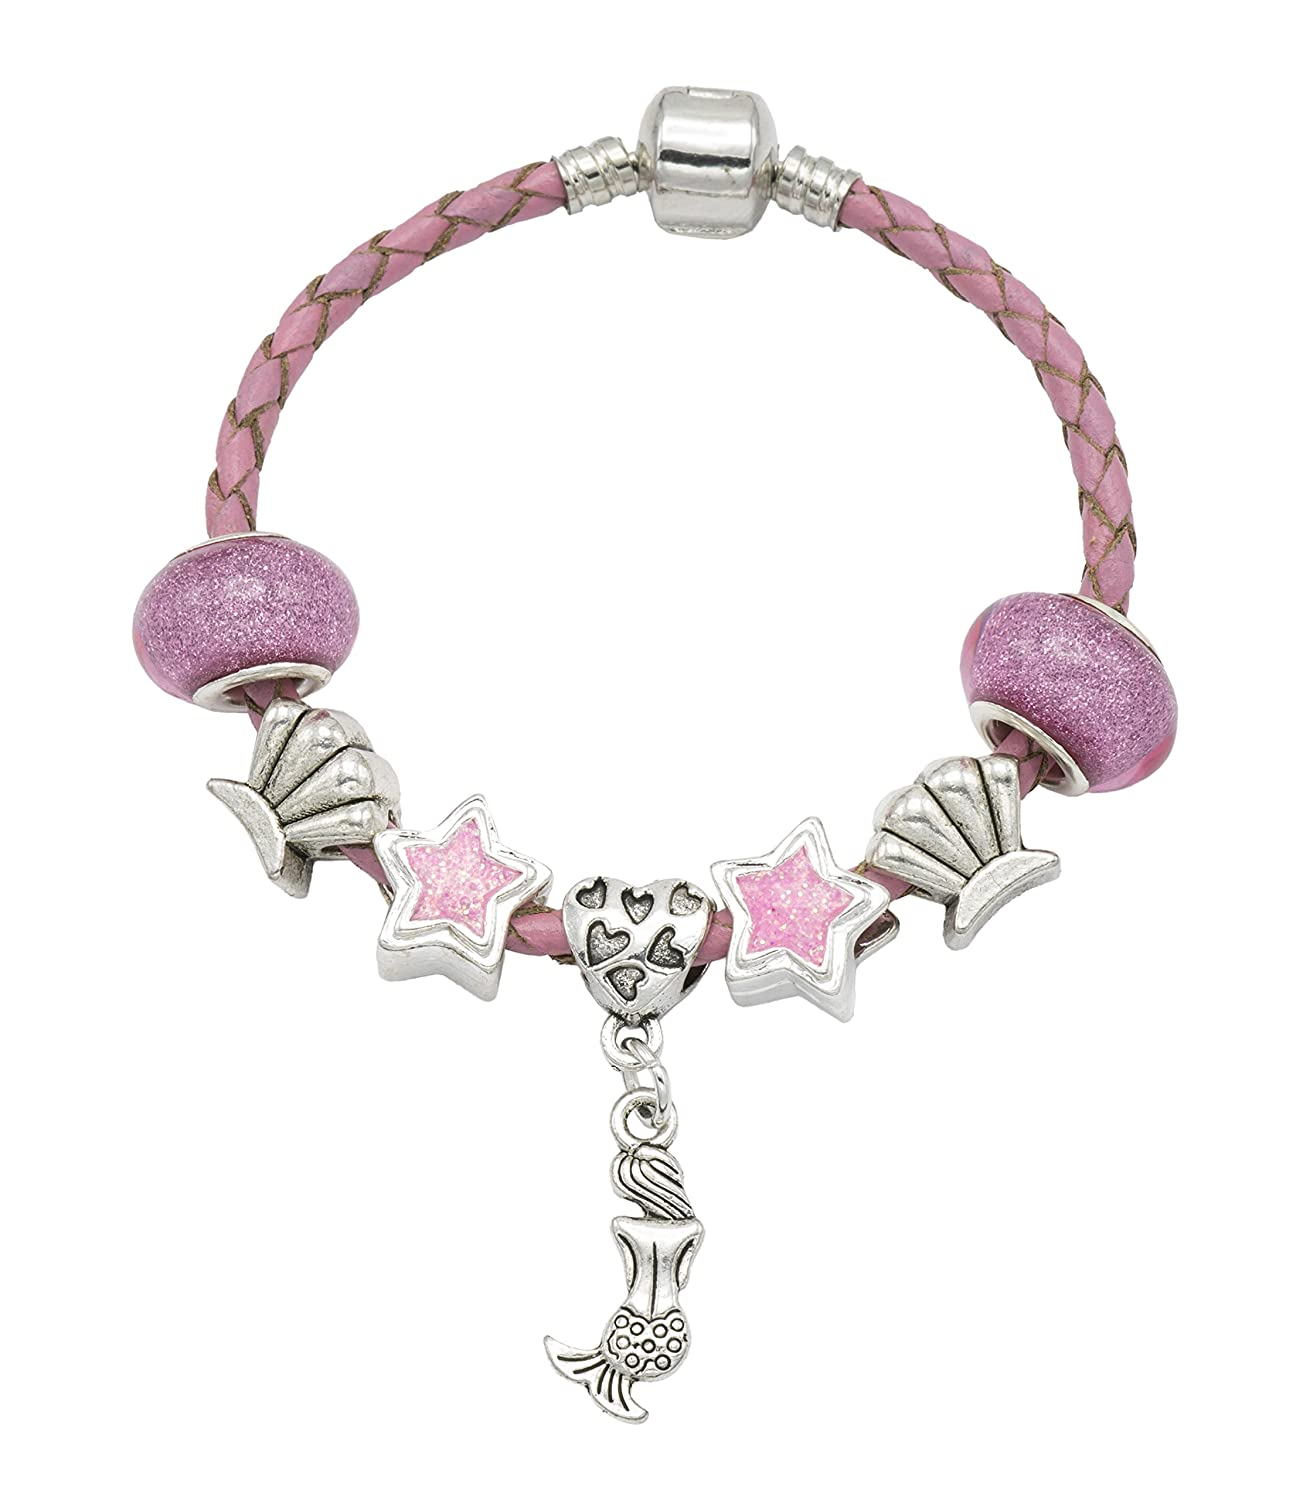 'My Little Mermaid' Pink Leather Birthday Charm Bracelet for Girls Presented In High Quality Gift Pouch Jewellery Hut BRMYLITTLEMERMAIDPINK2